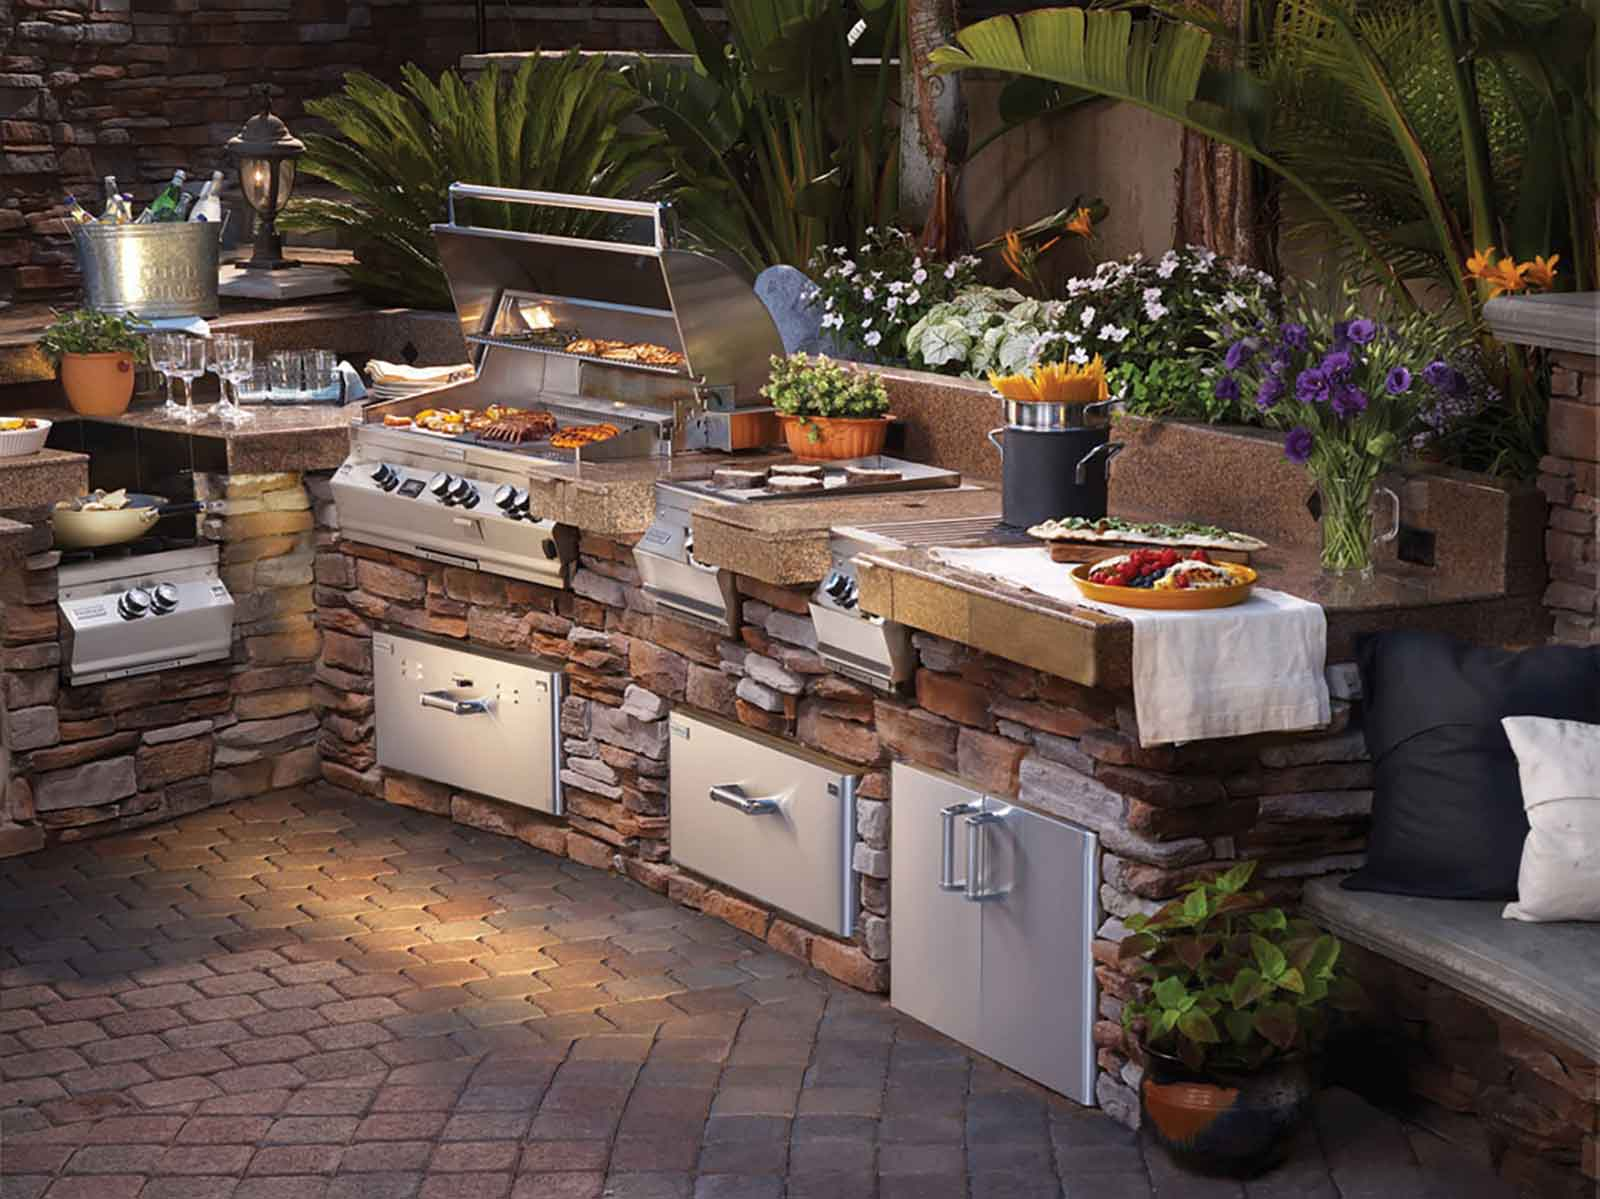 Gourmet outdoor kitchen with build-in appliances